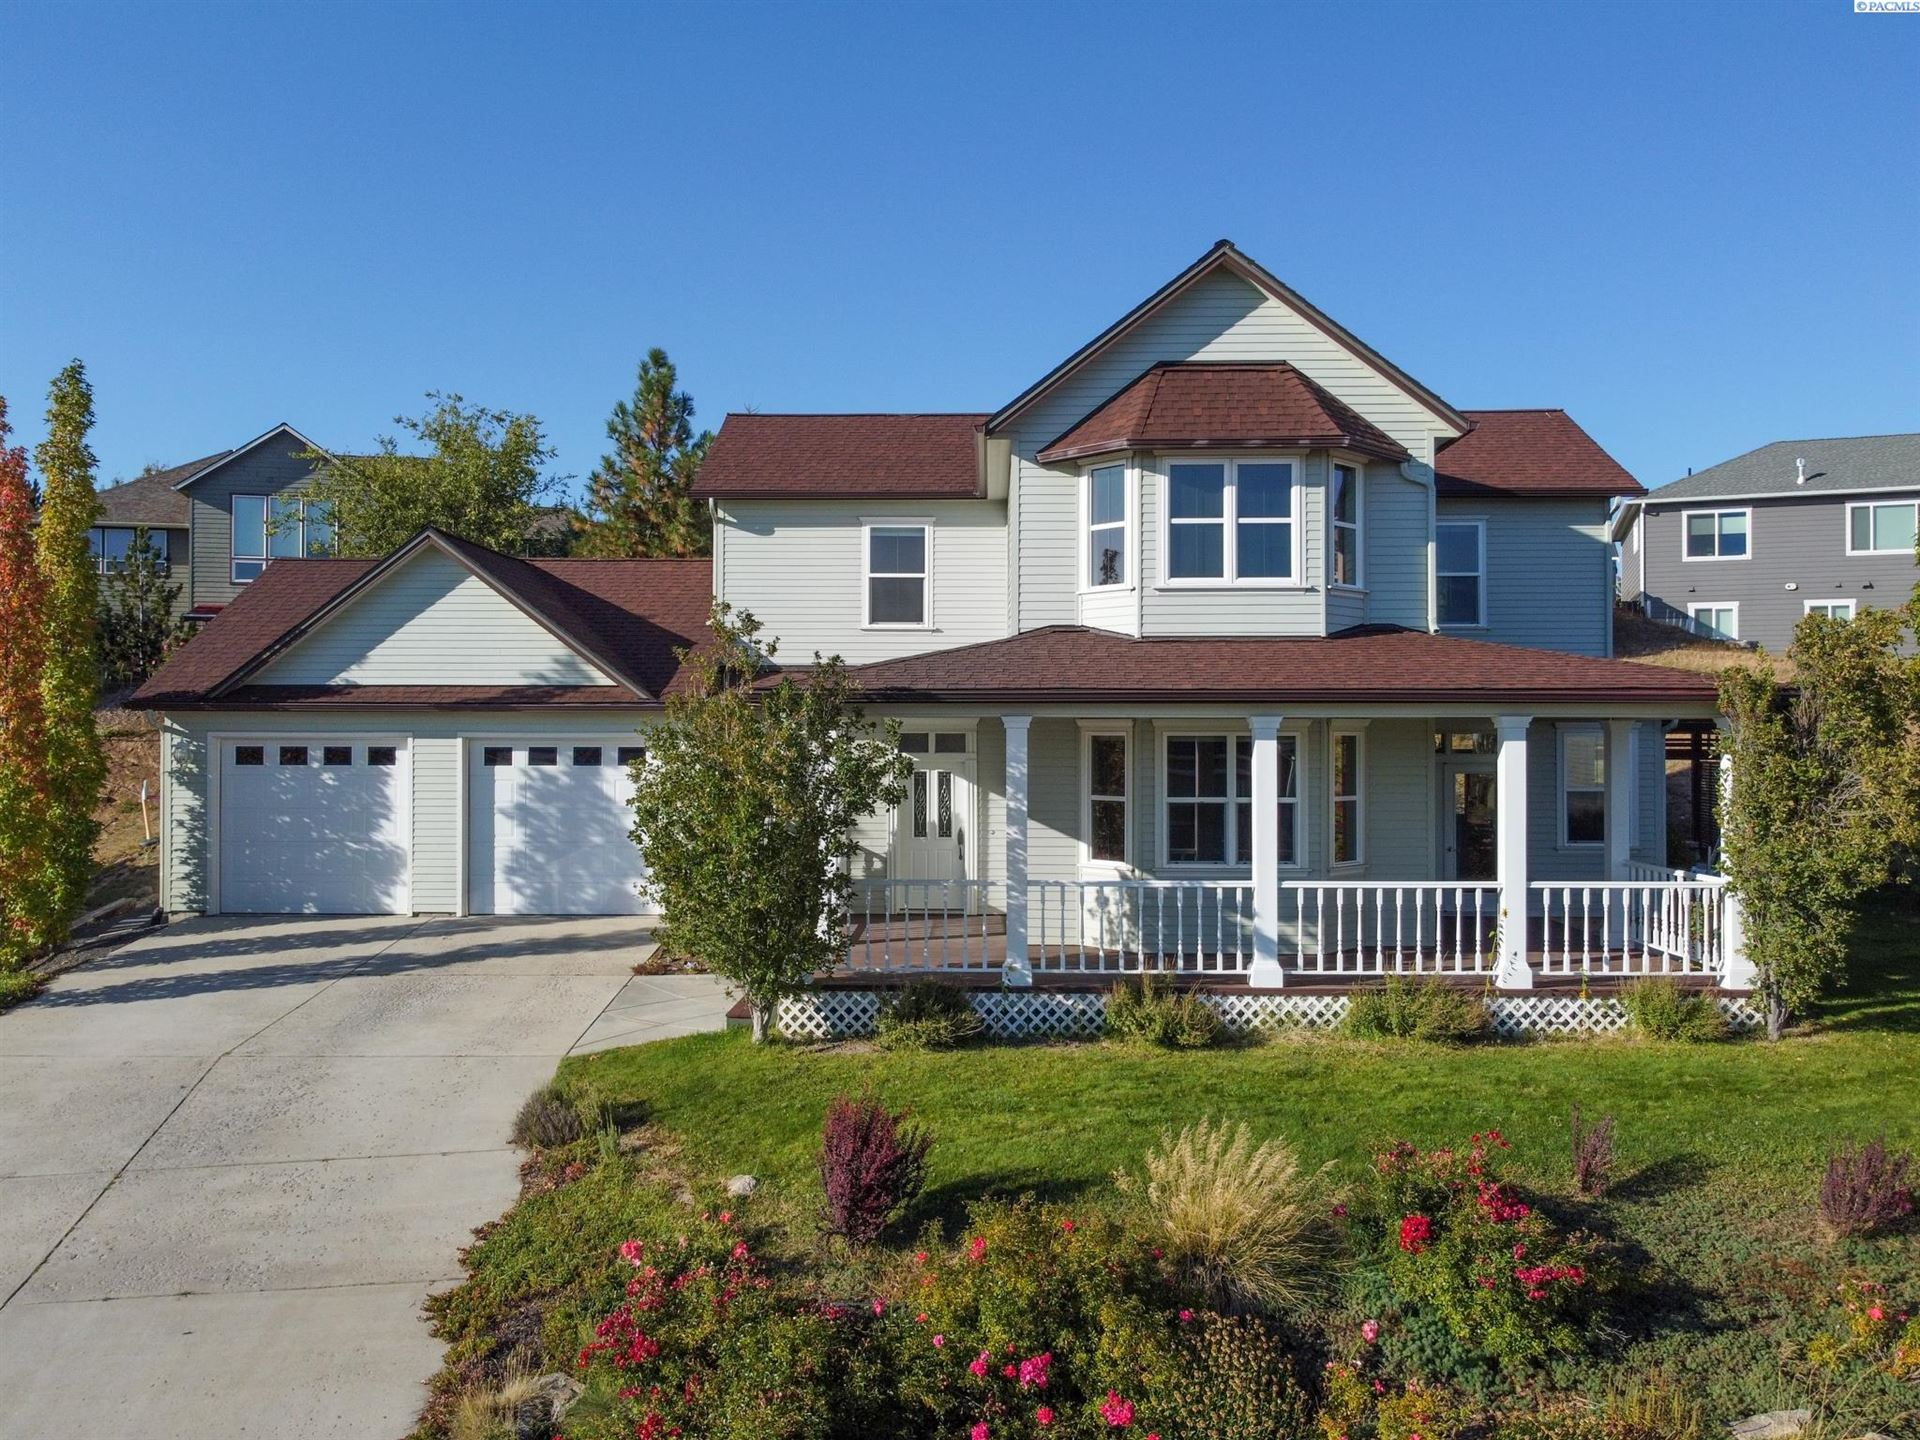 Photo of 700 NW Valley View Dr., Pullman, WA 99163 (MLS # 256562)